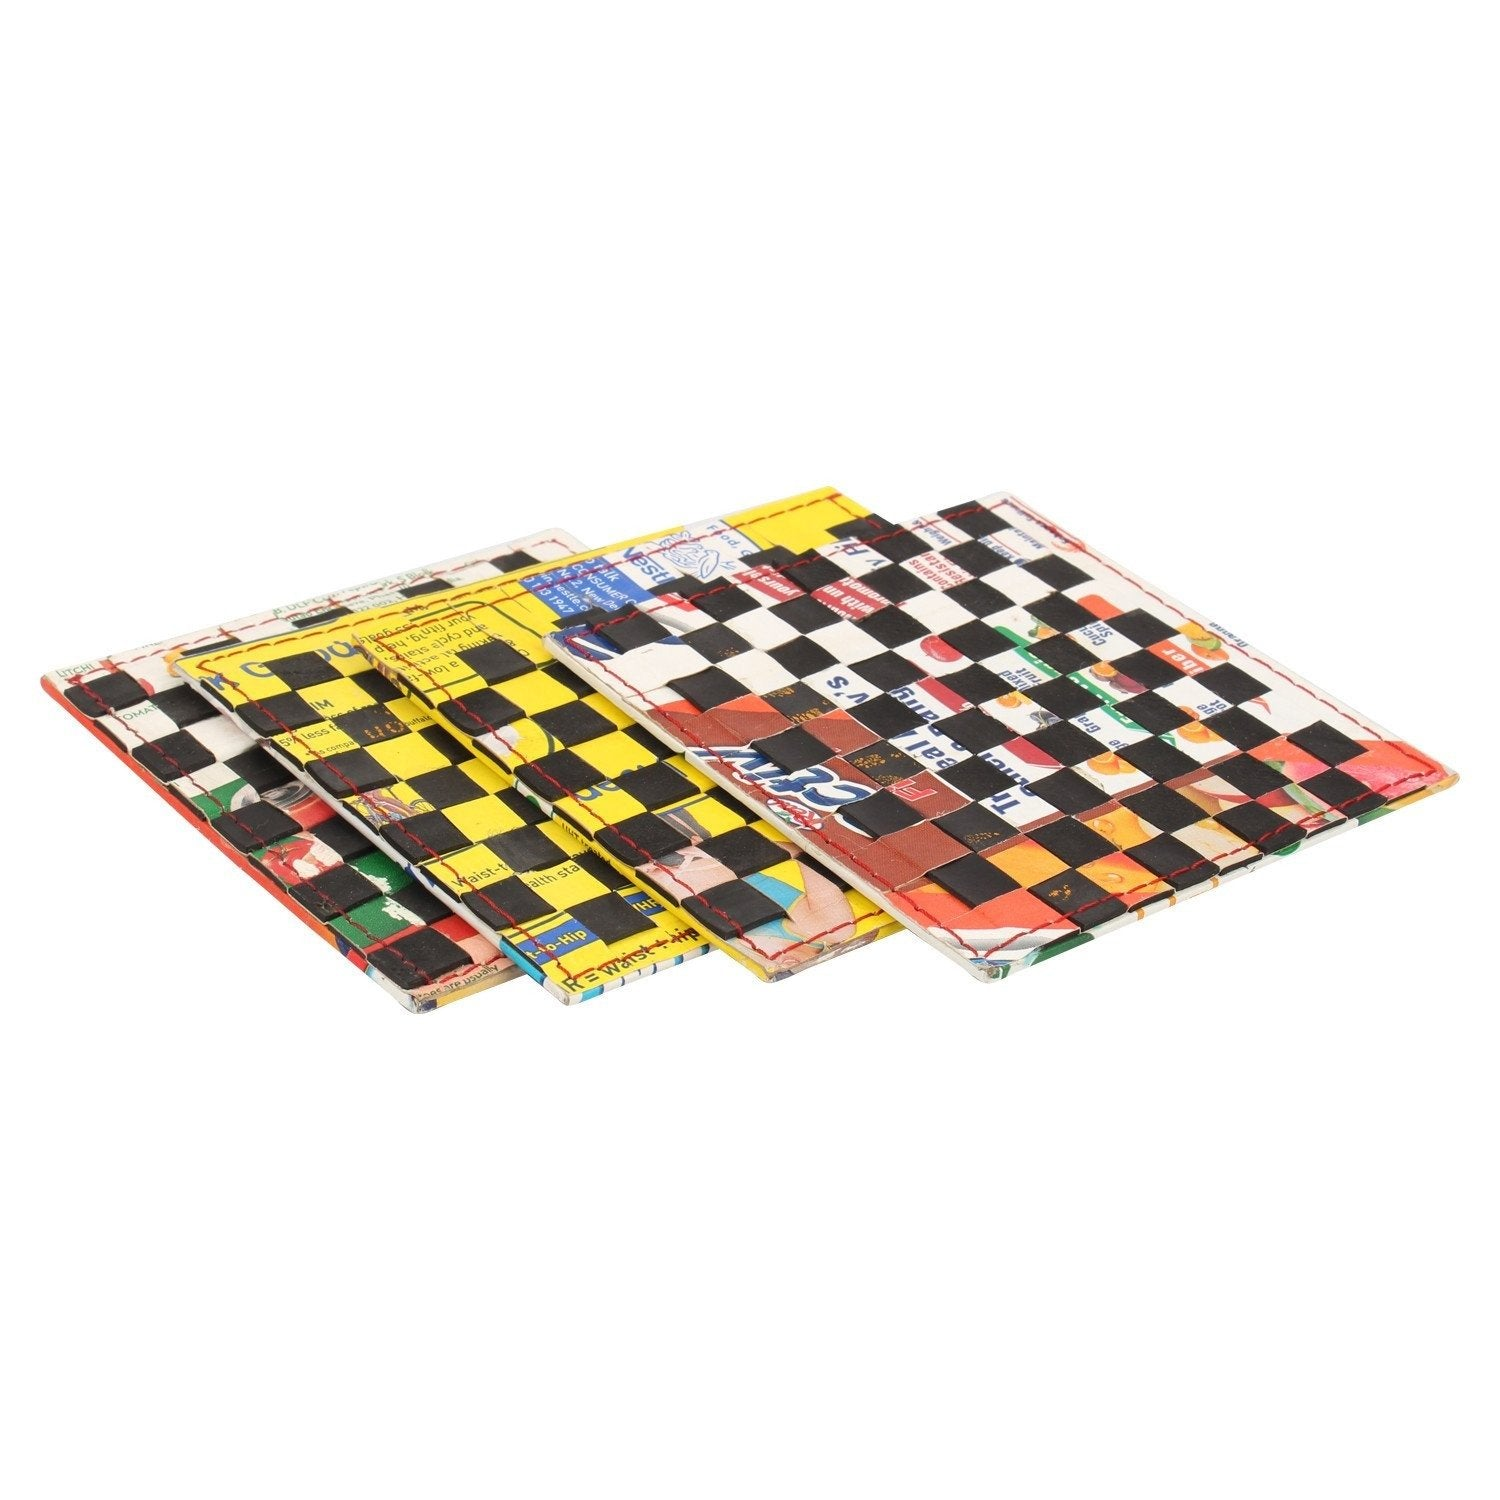 Chess coasters (Set of 4) - Green The Map Upcycled Recycled Fairtrade Ecofriendly